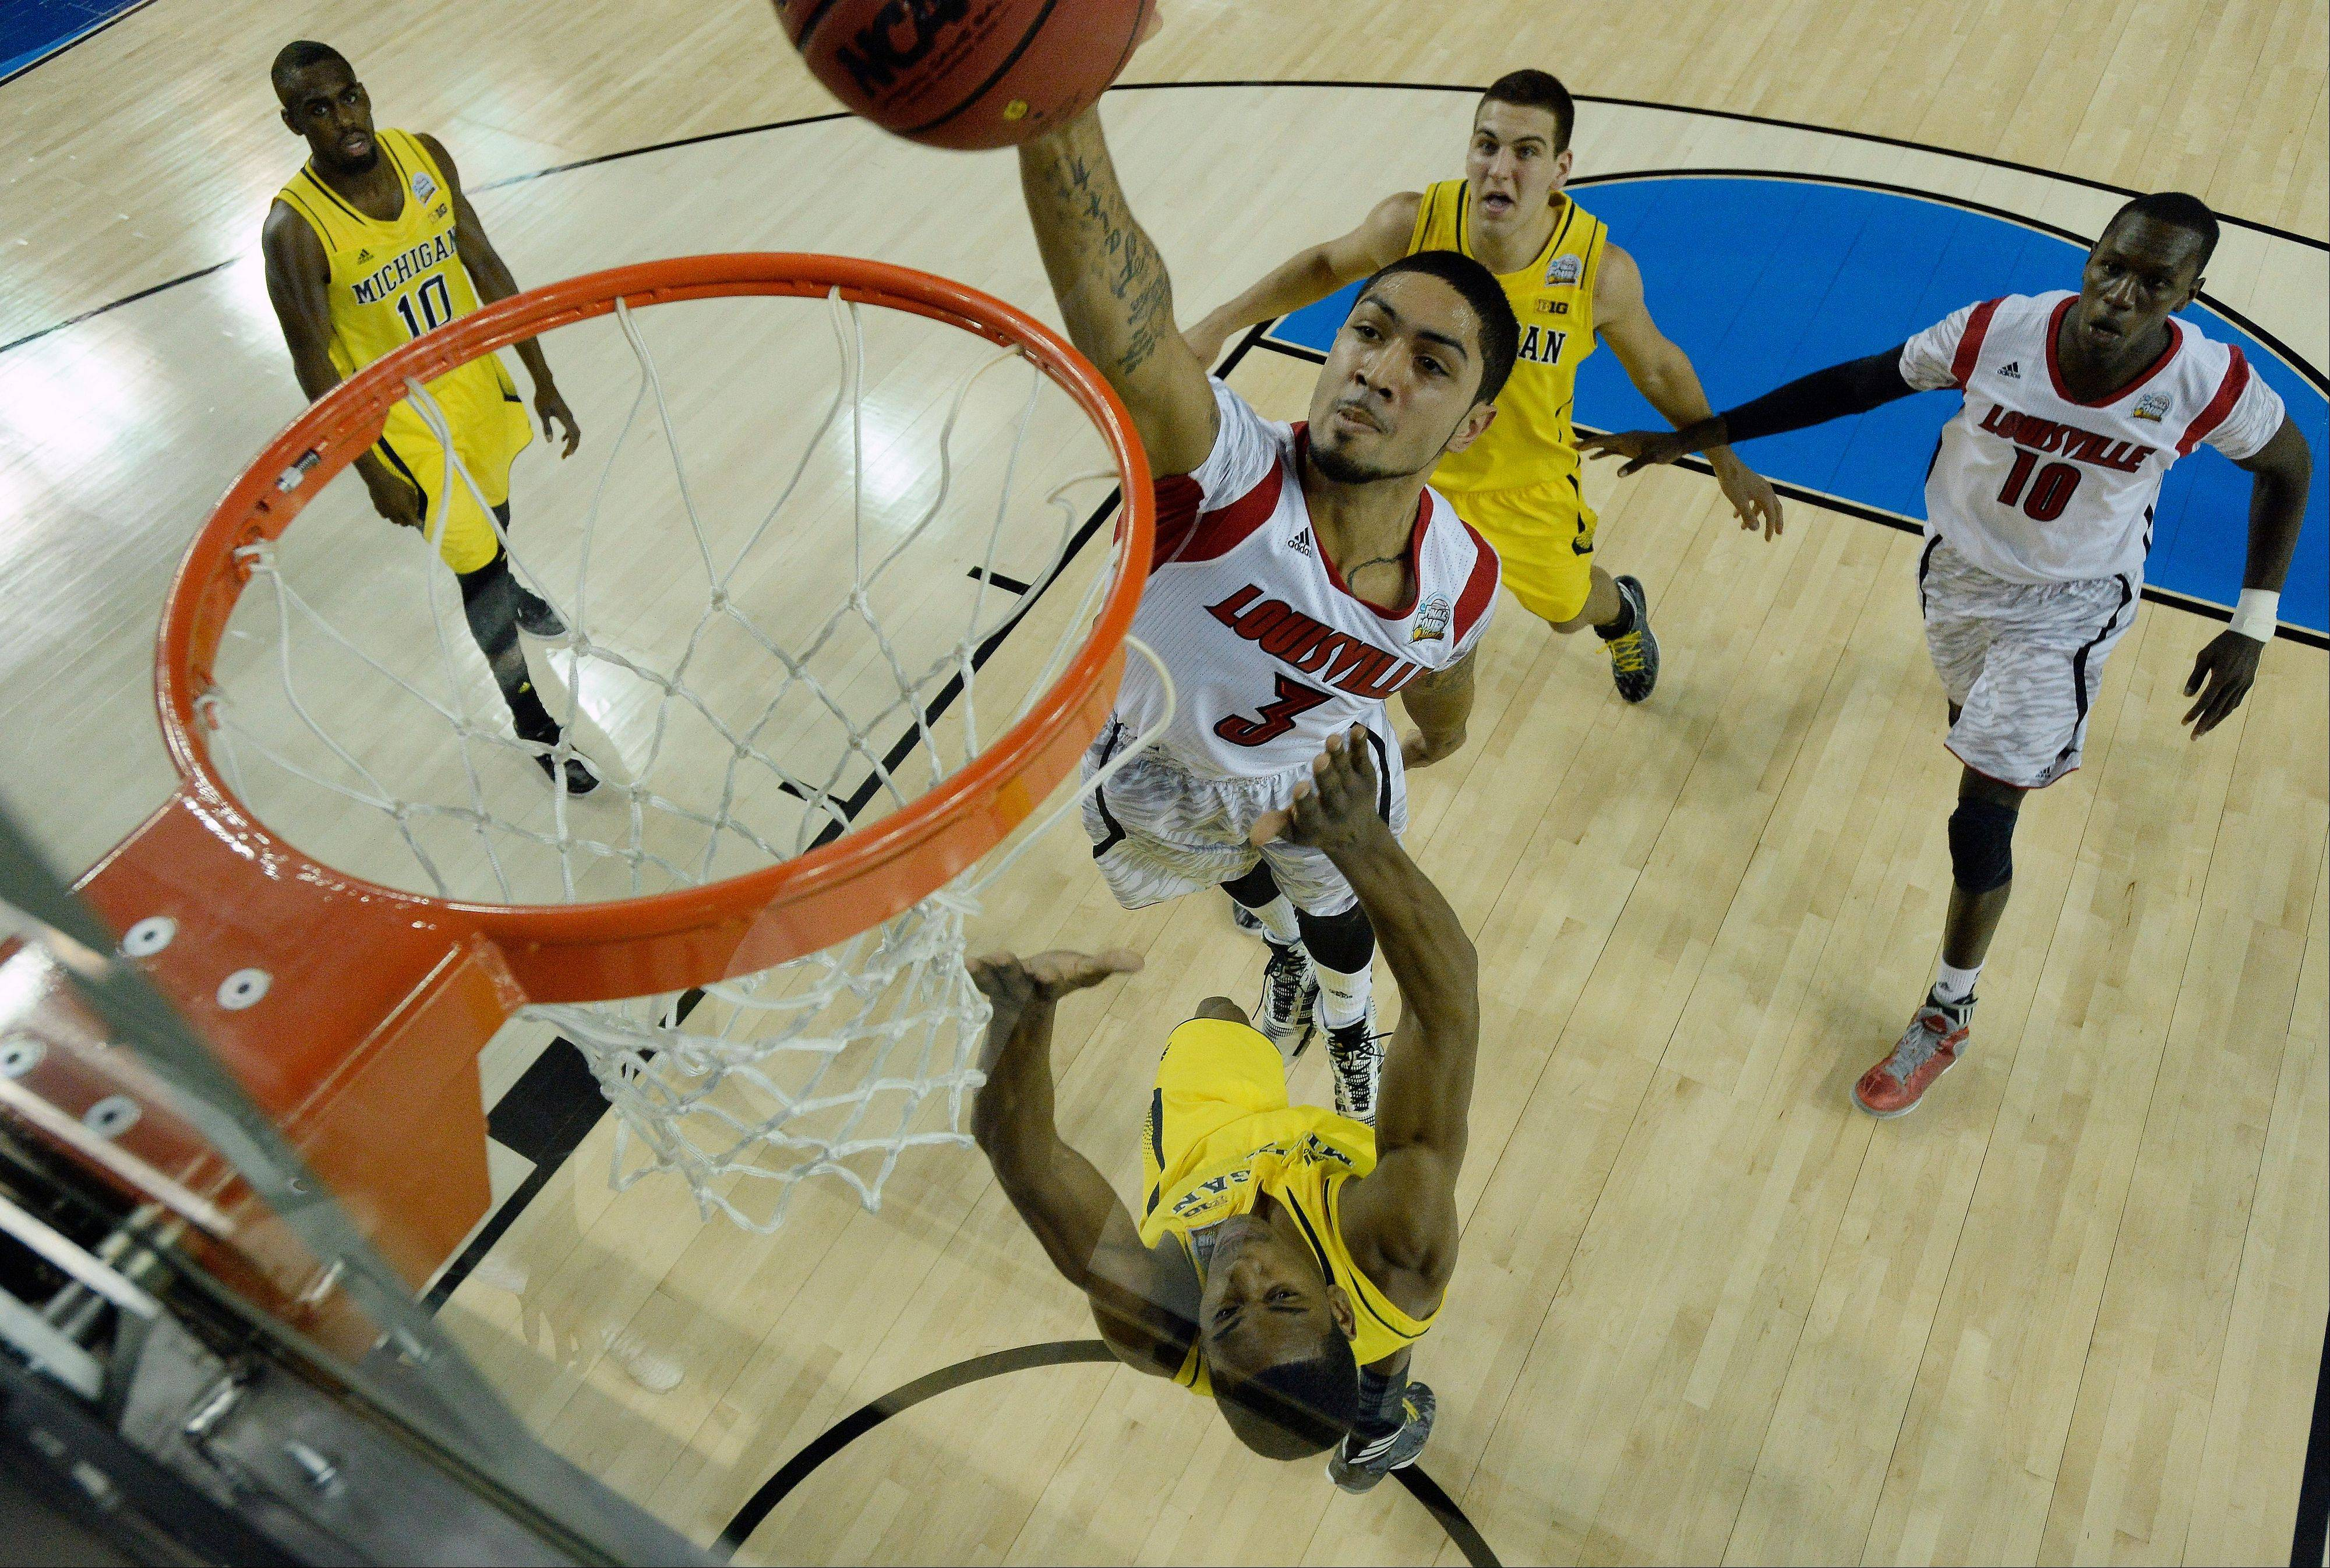 Louisville guard Peyton Siva (3) shoots against a Michigan defense during the first half of the NCAA Final Four tournament college basketball championship game Monday, April 8, 2013, in Atlanta.